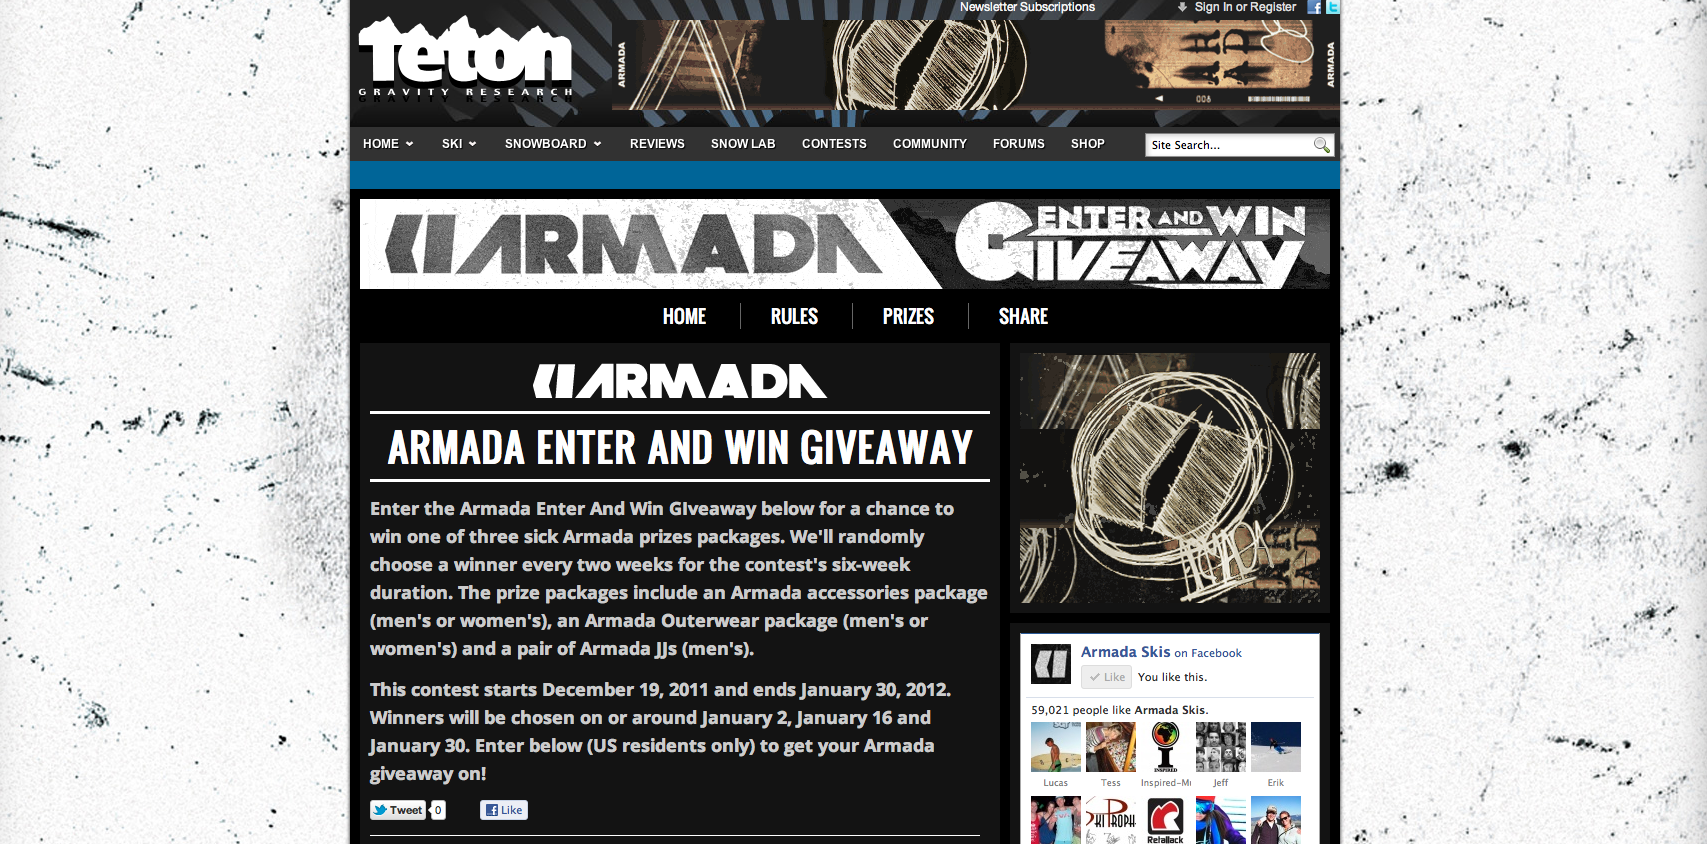 Armada Enter And Win Giveaway Contest Screen Shot